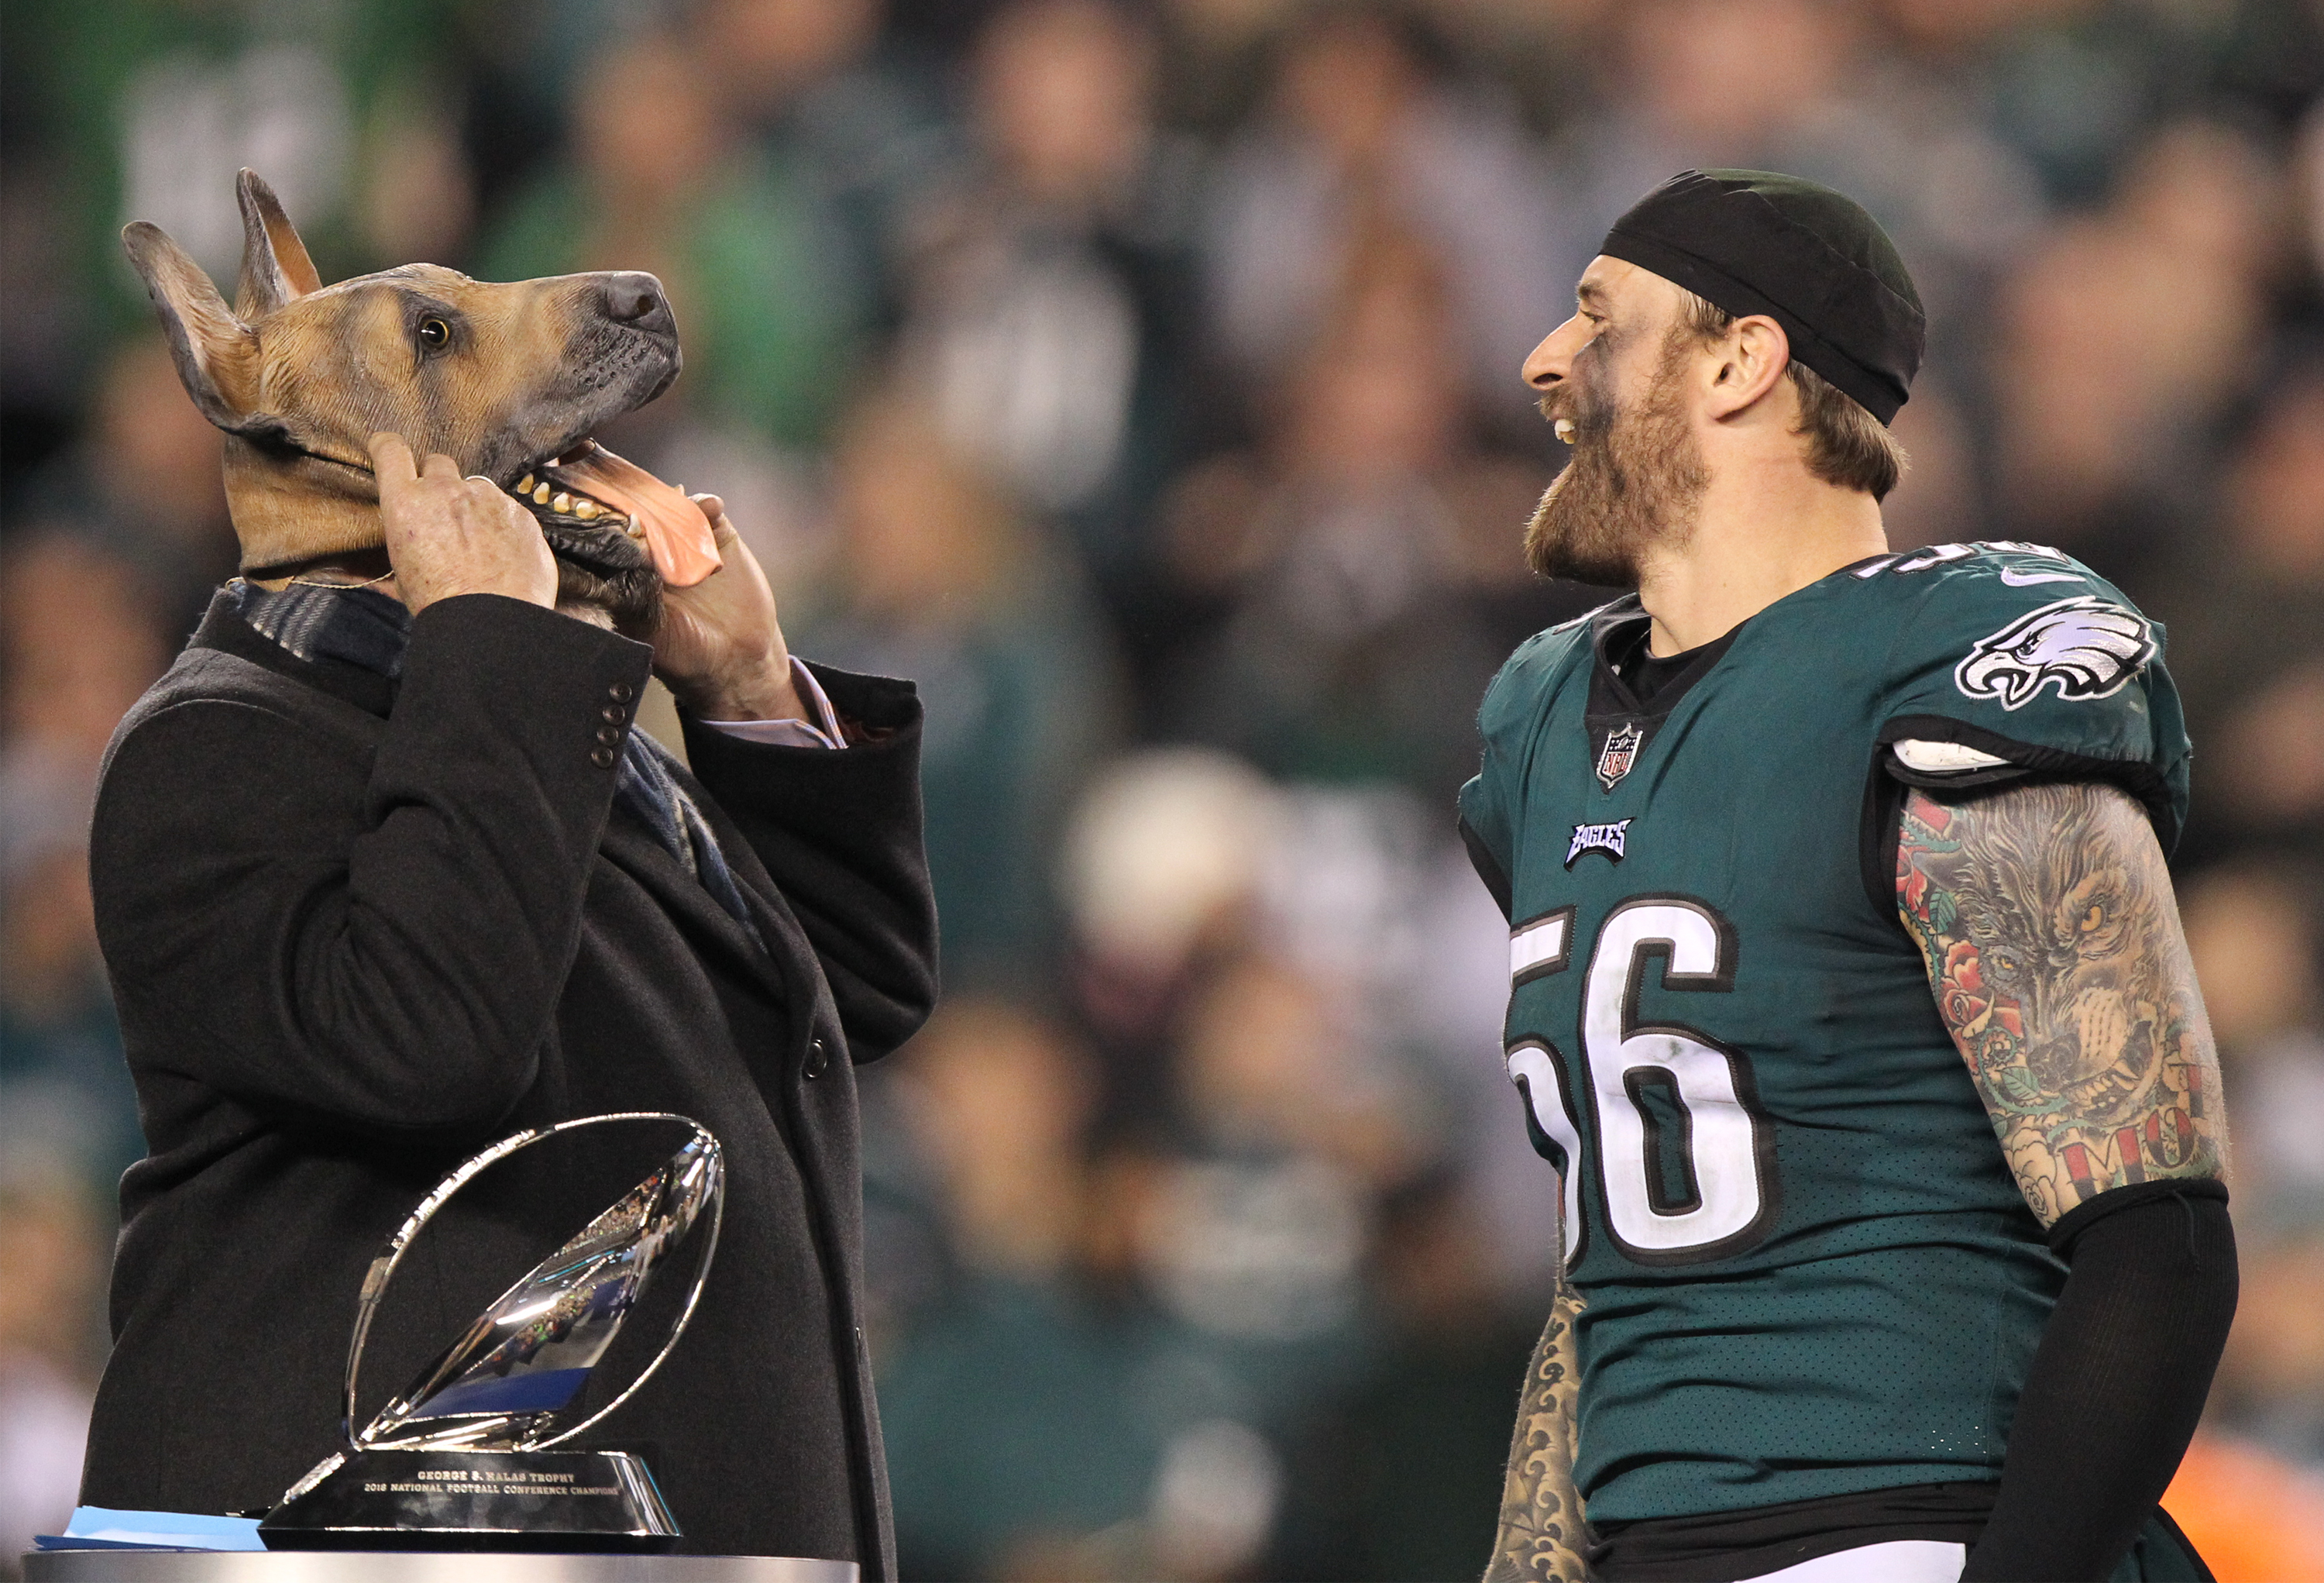 Eagle defensive end Chris Long, right, erupts in laughter as Terry Bradshaw dons a dog mask on the podium during the award ceremony for the NFC championship on Sunday night.